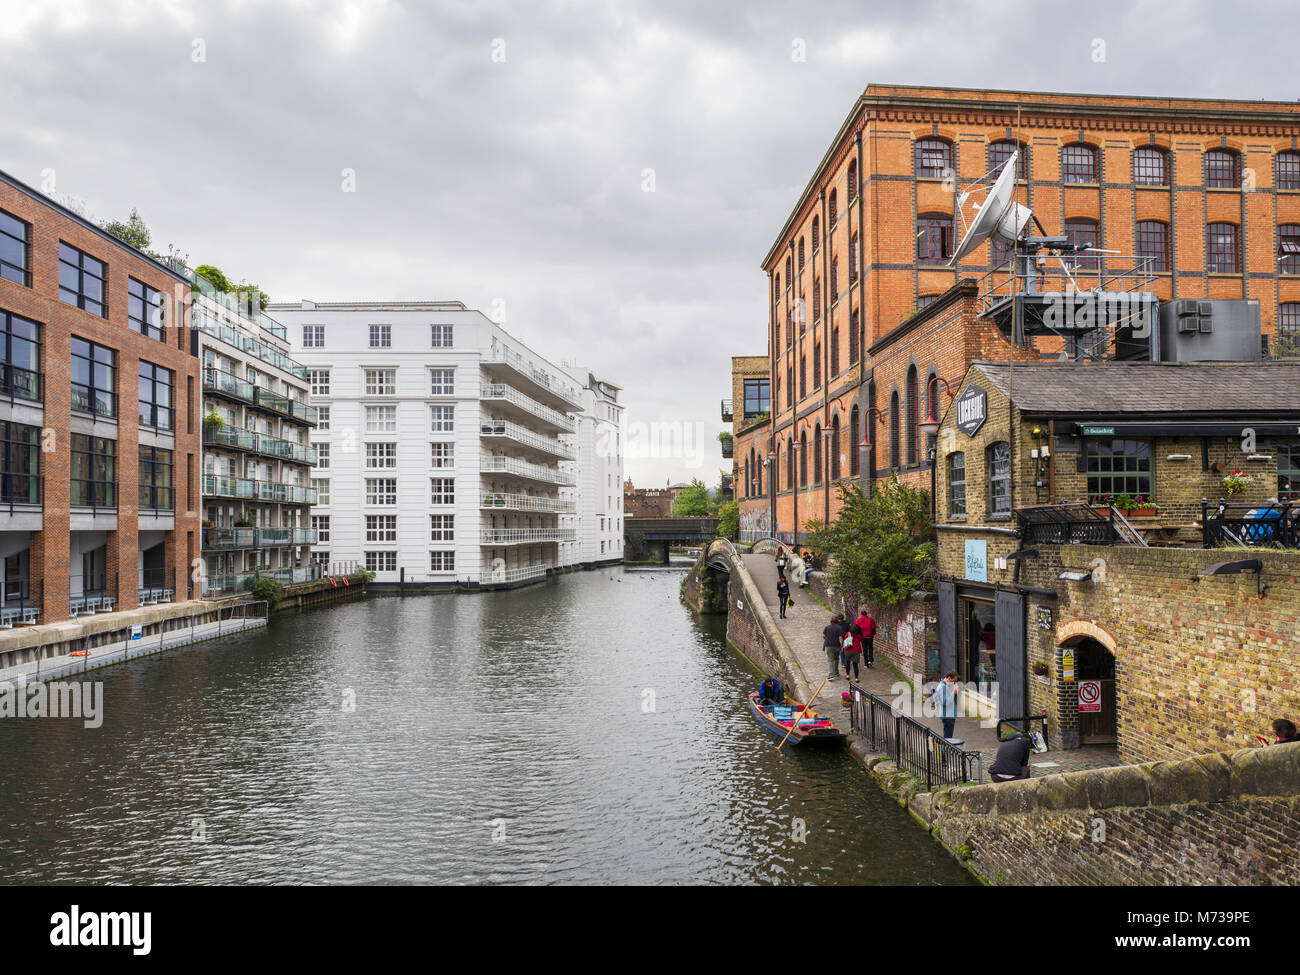 View of Regent's Canal, near Camden Lock Market, London, UK. - Stock Image